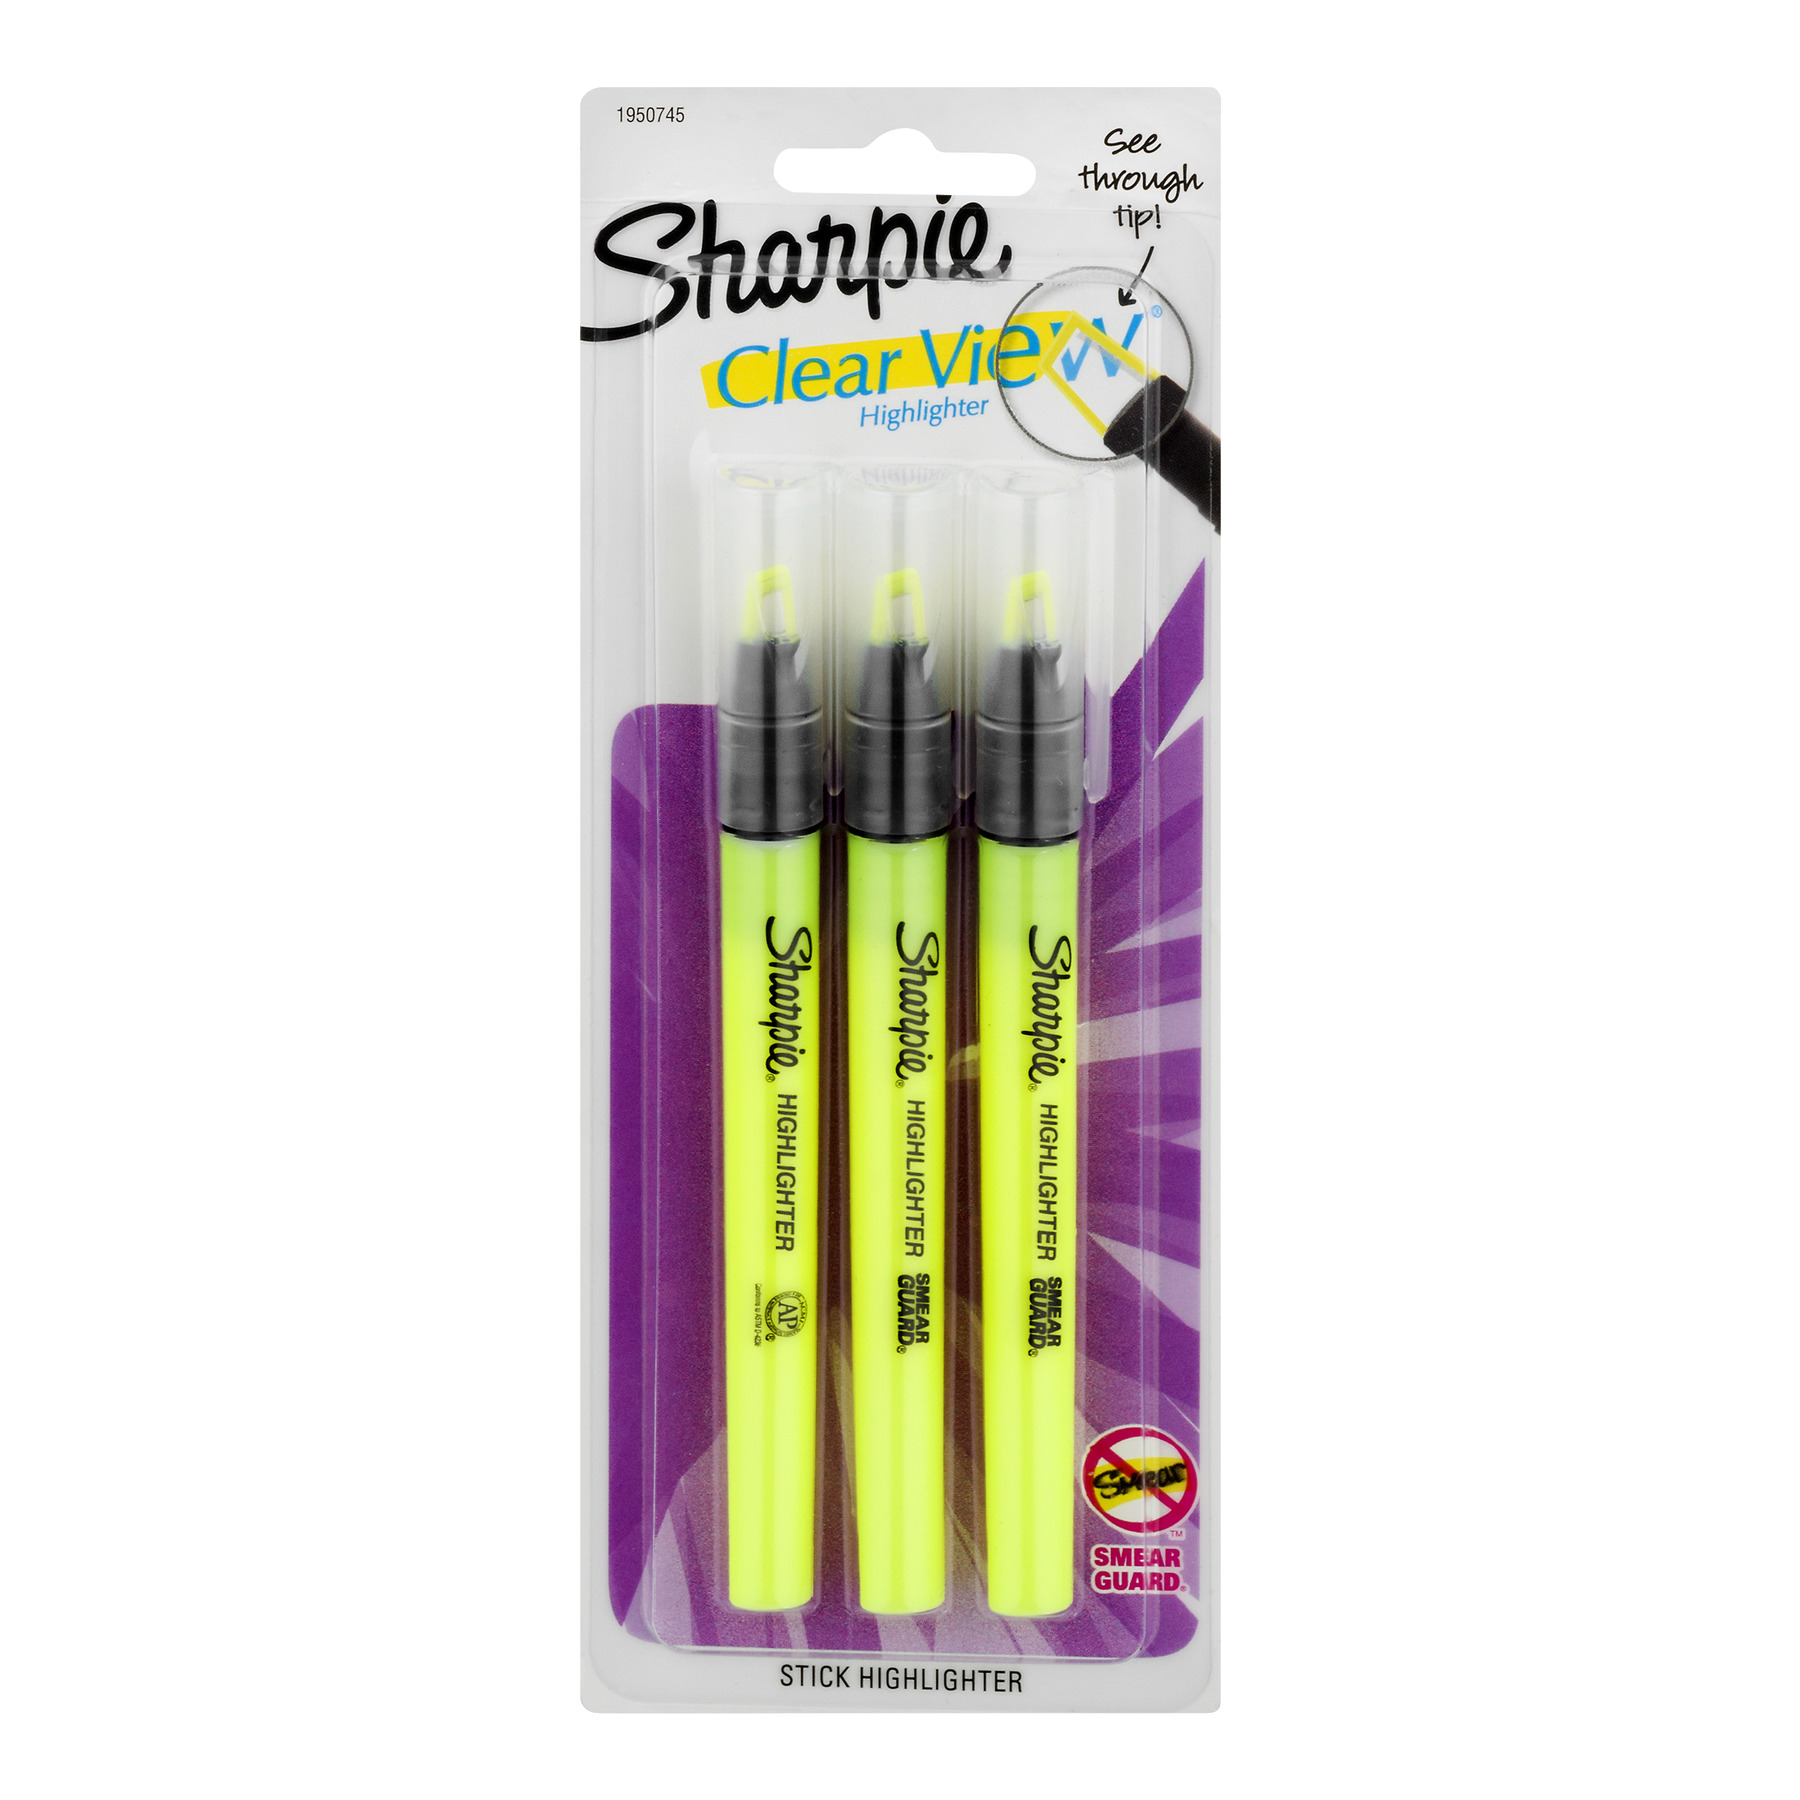 Sharpie Clear View Highlighter - 3 CT1.0 CT